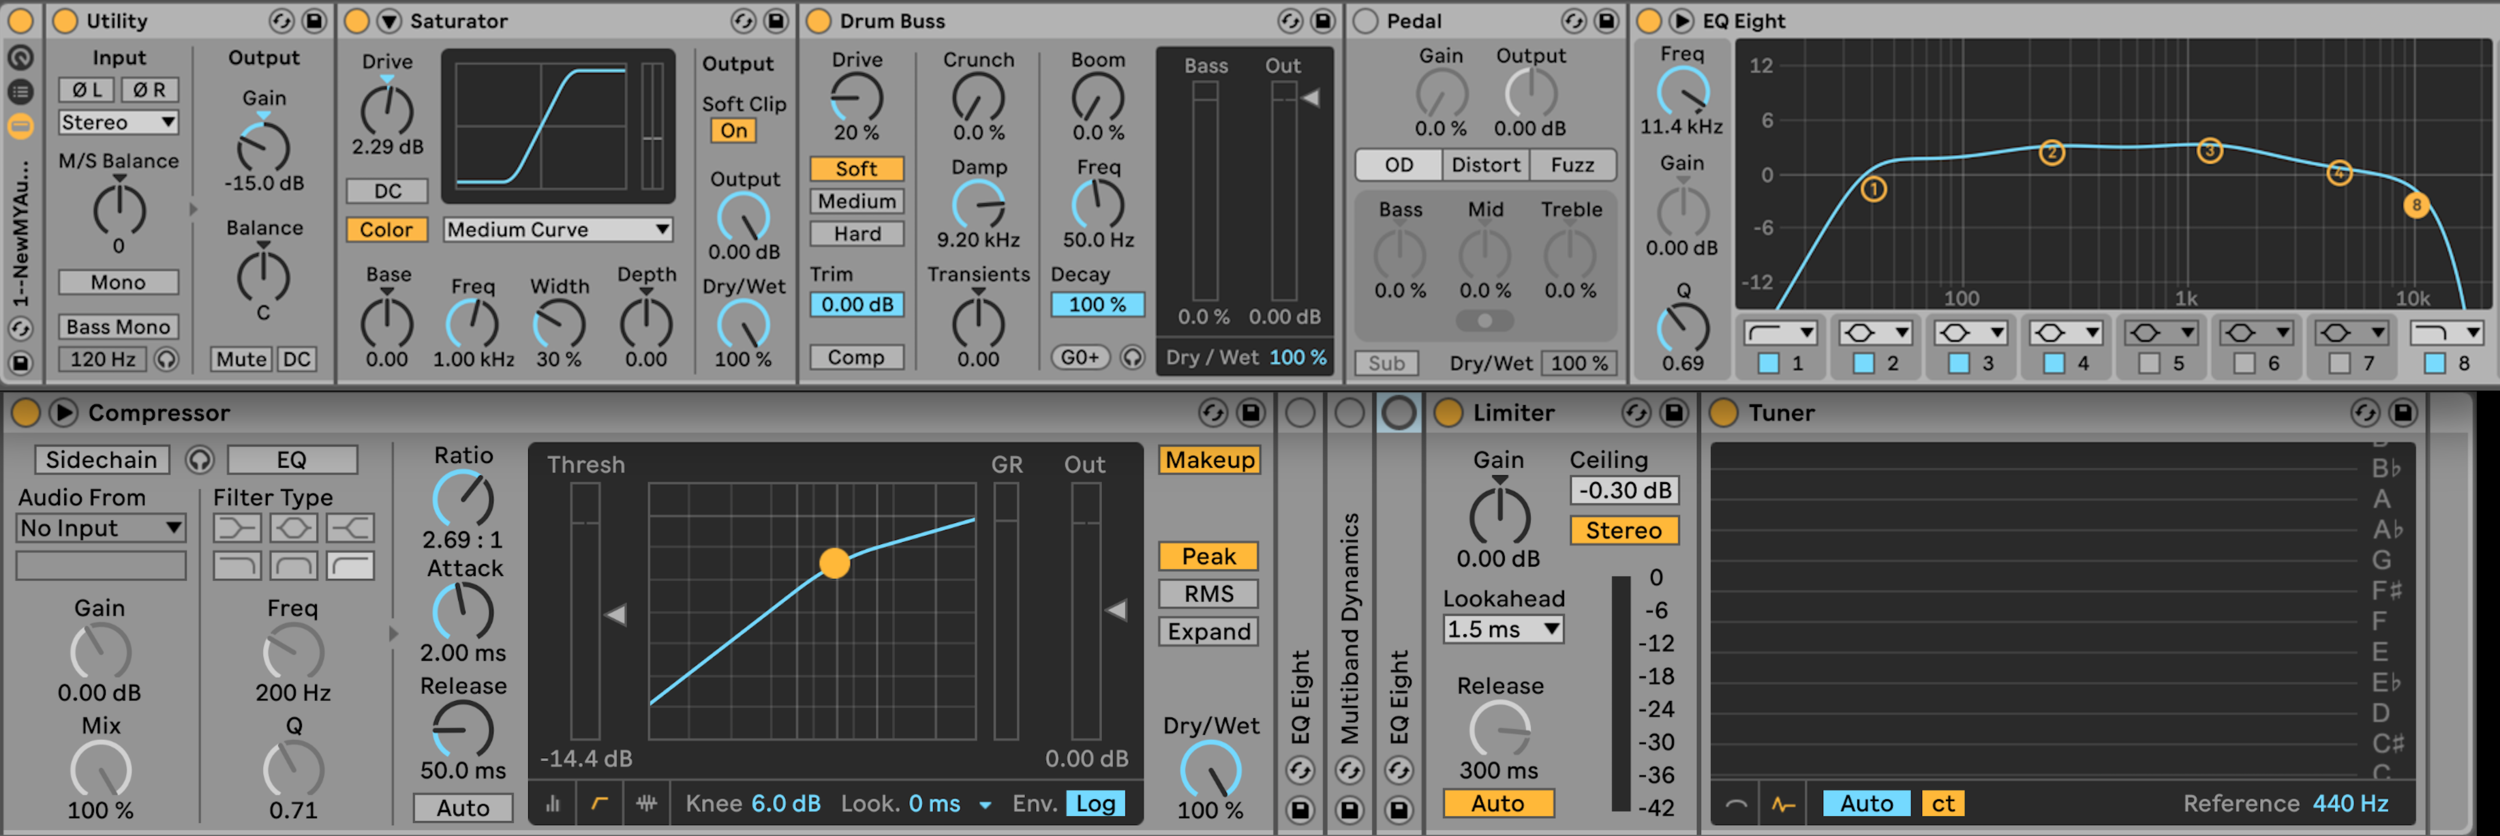 Figure 28 – My Audio Effect Rack in Ableton Live, 2019.